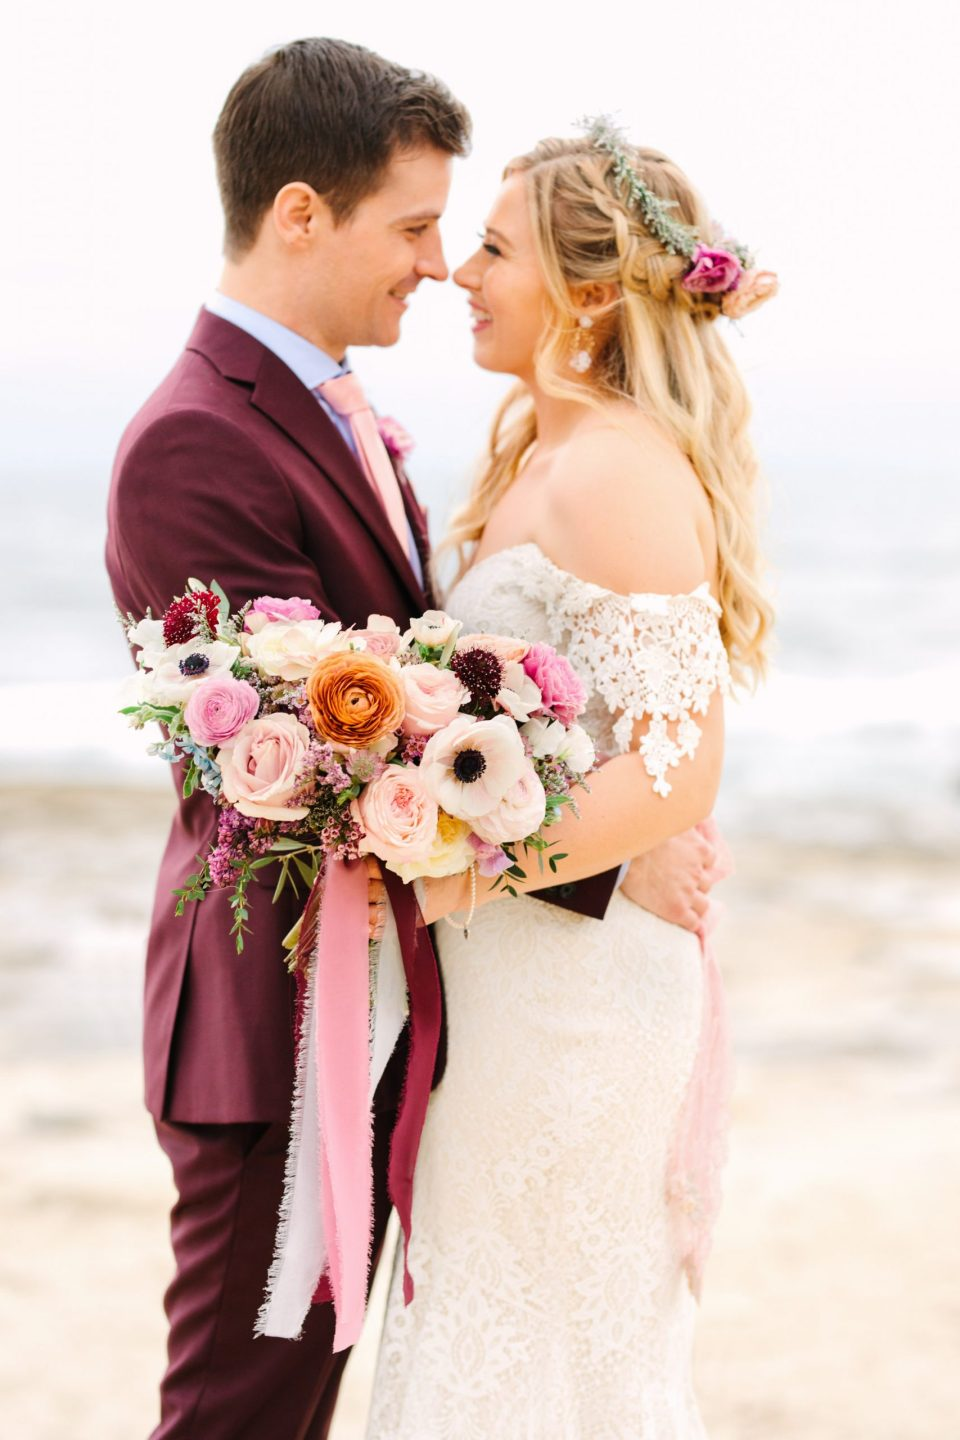 Bouquet close up at the beach - www.marycostaweddings.com